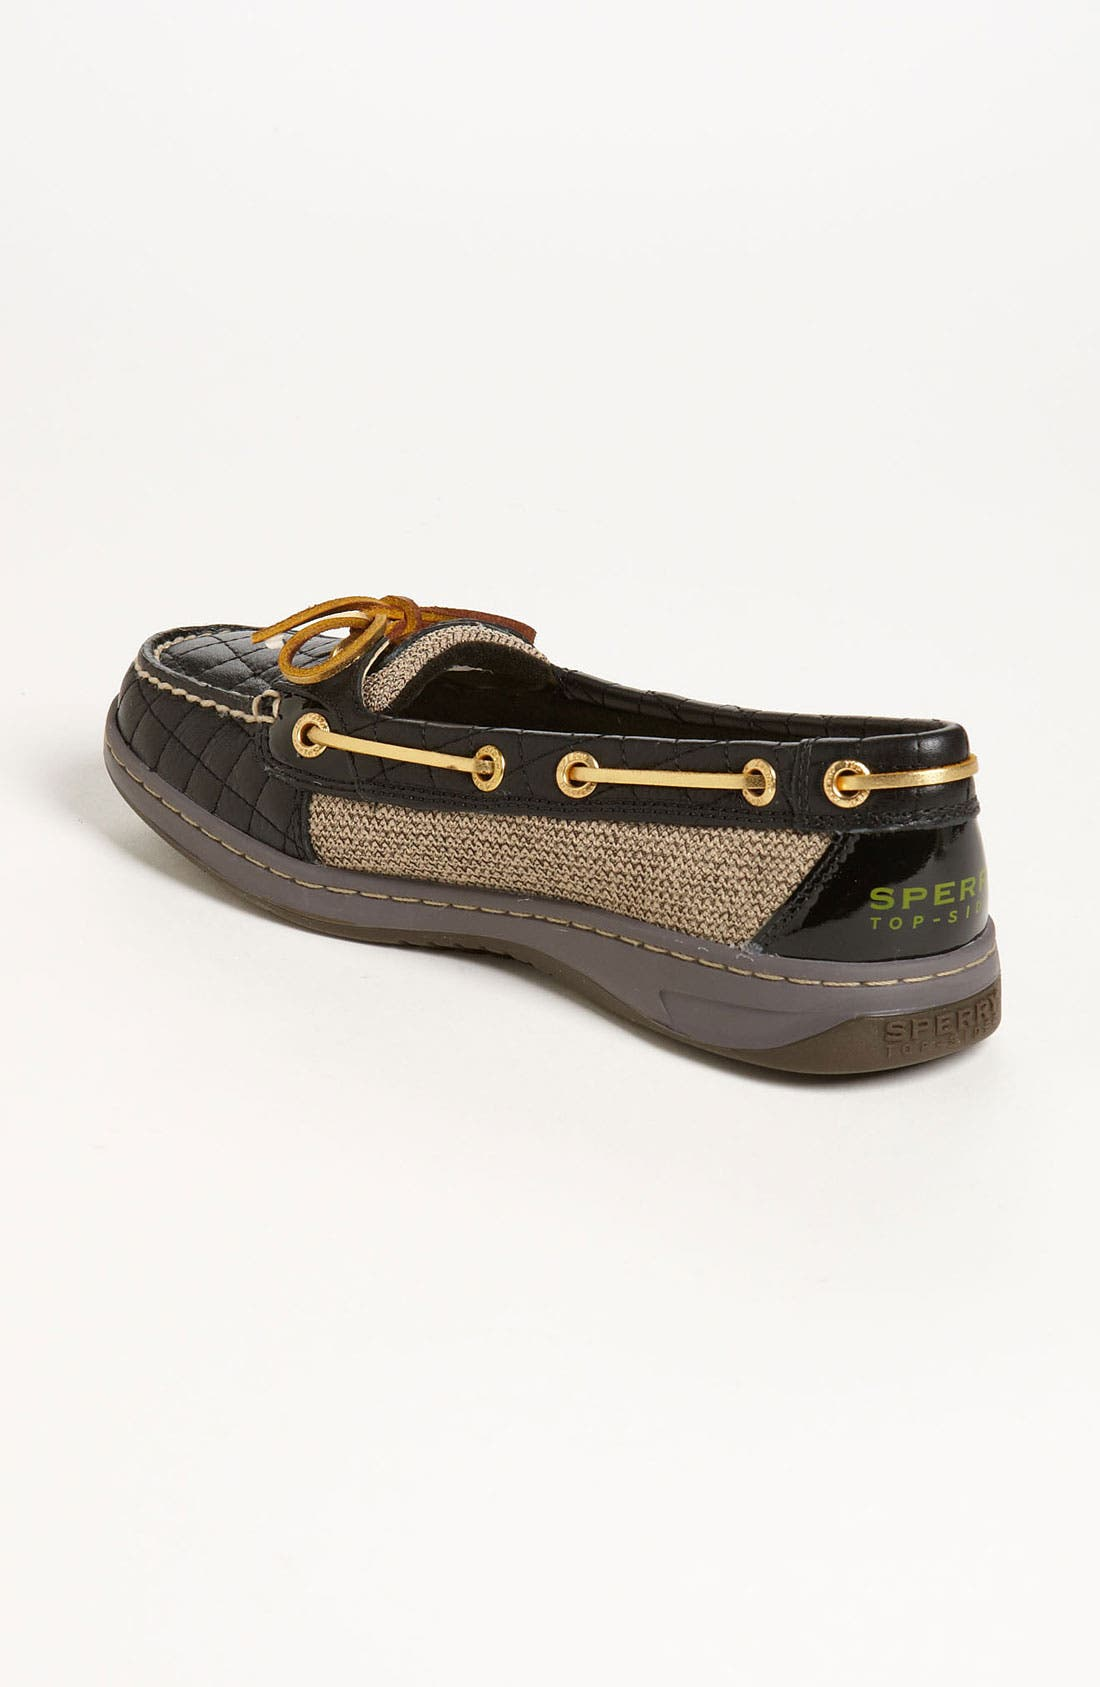 Top-Sider<sup>®</sup> 'Angelfish - Quilted' Boat Shoe,                             Alternate thumbnail 2, color,